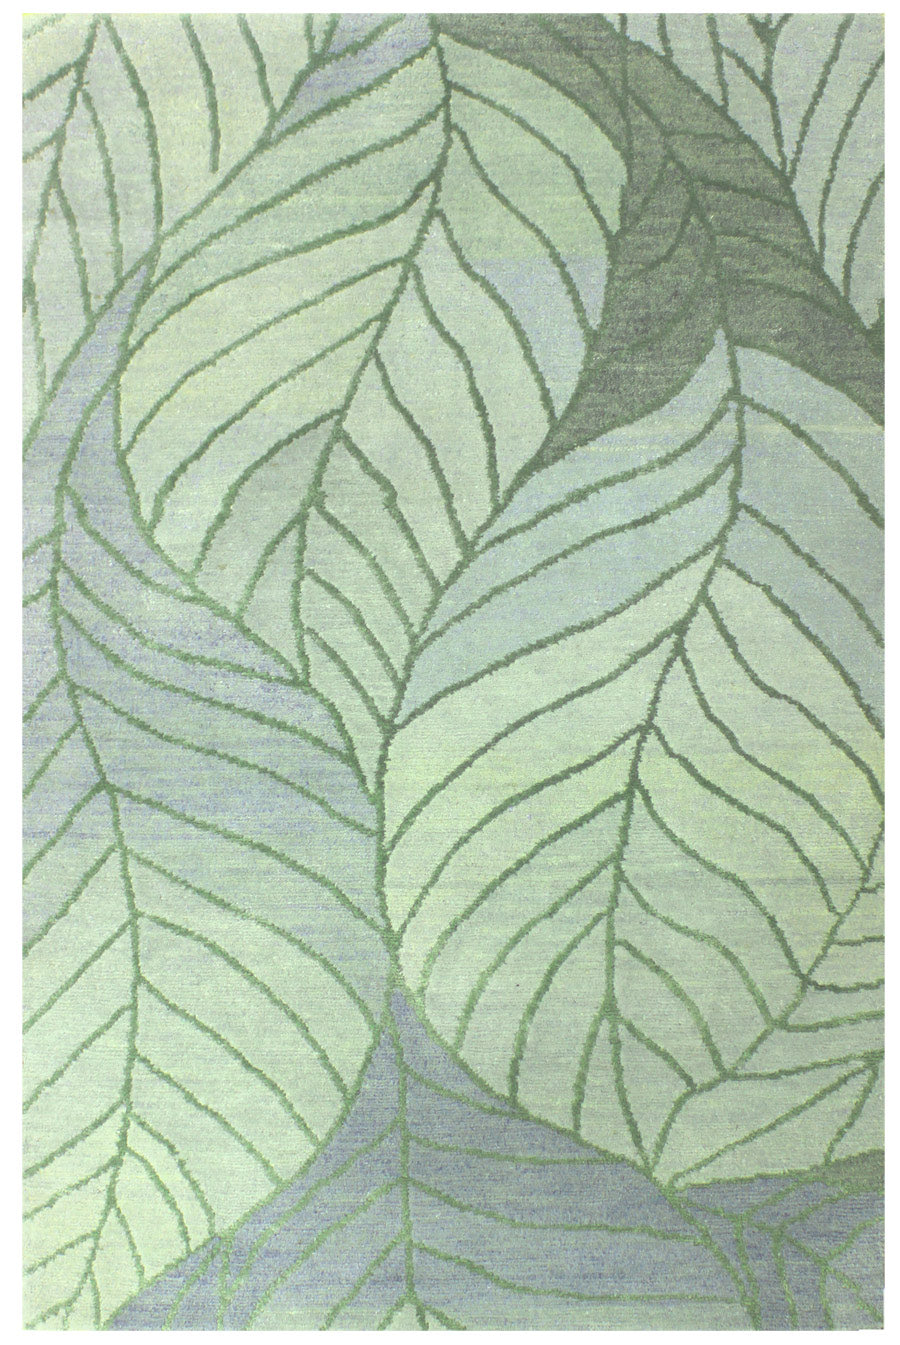 Beech Leaf Handwoven Transitional Rug